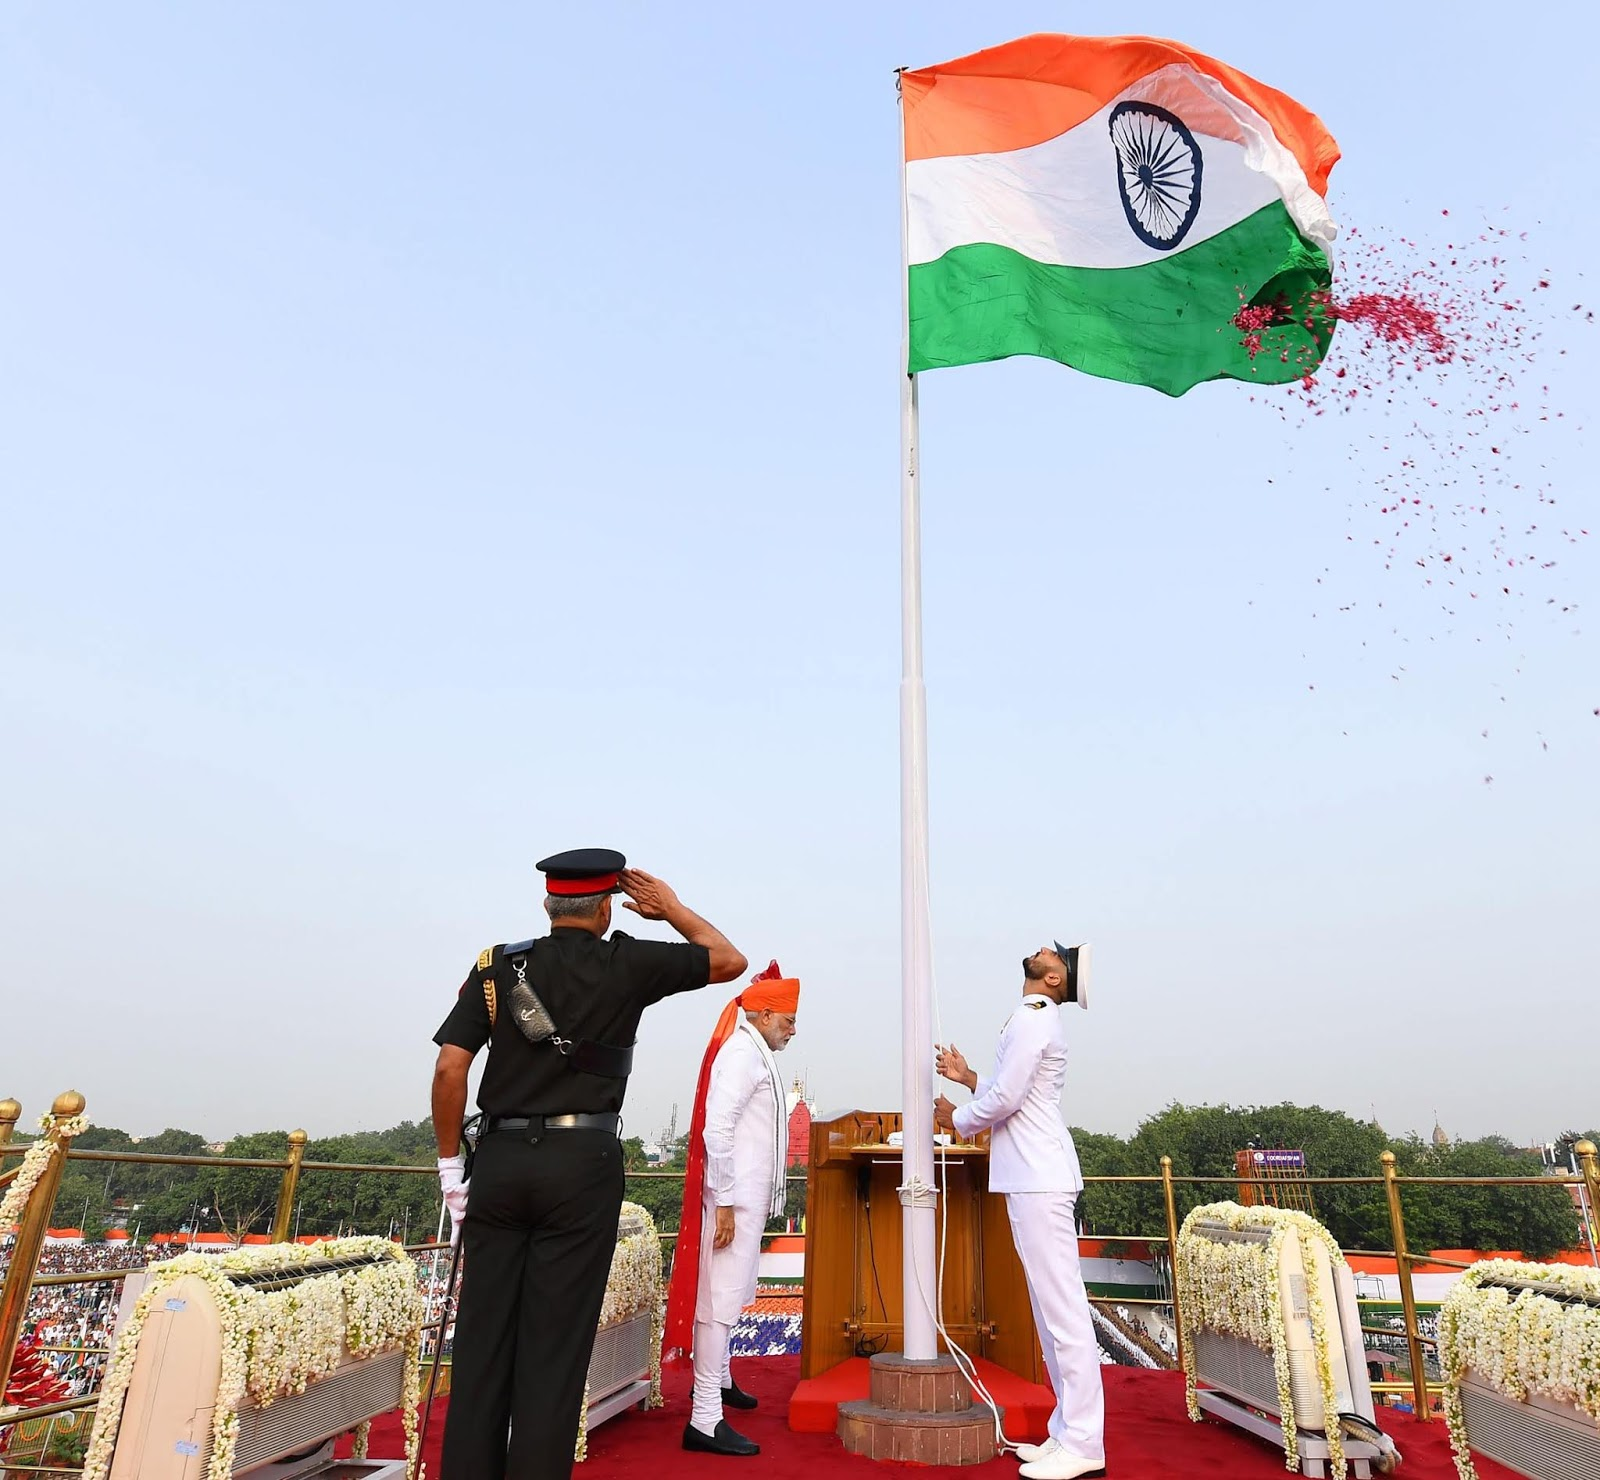 The Prime Minister, Narendra Modi unfurling the Tricolour flag at the ramparts of Red Fort on the occasion of 72nd Independence Day in Delhi on August 15, 2018